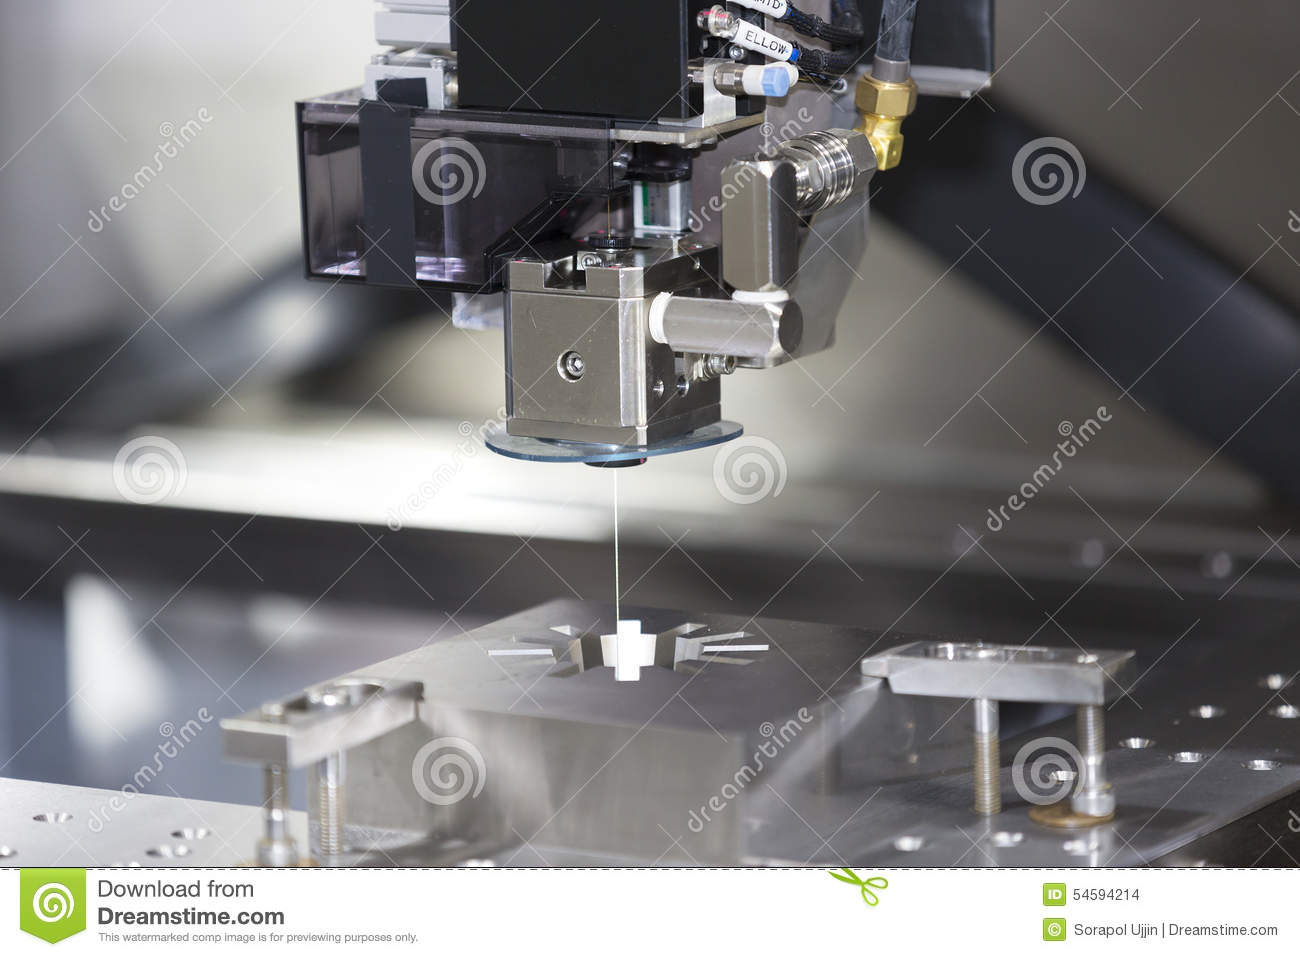 CNC Wire Cut Machine Cutting Mold Parts Stock Photo - Image of ...